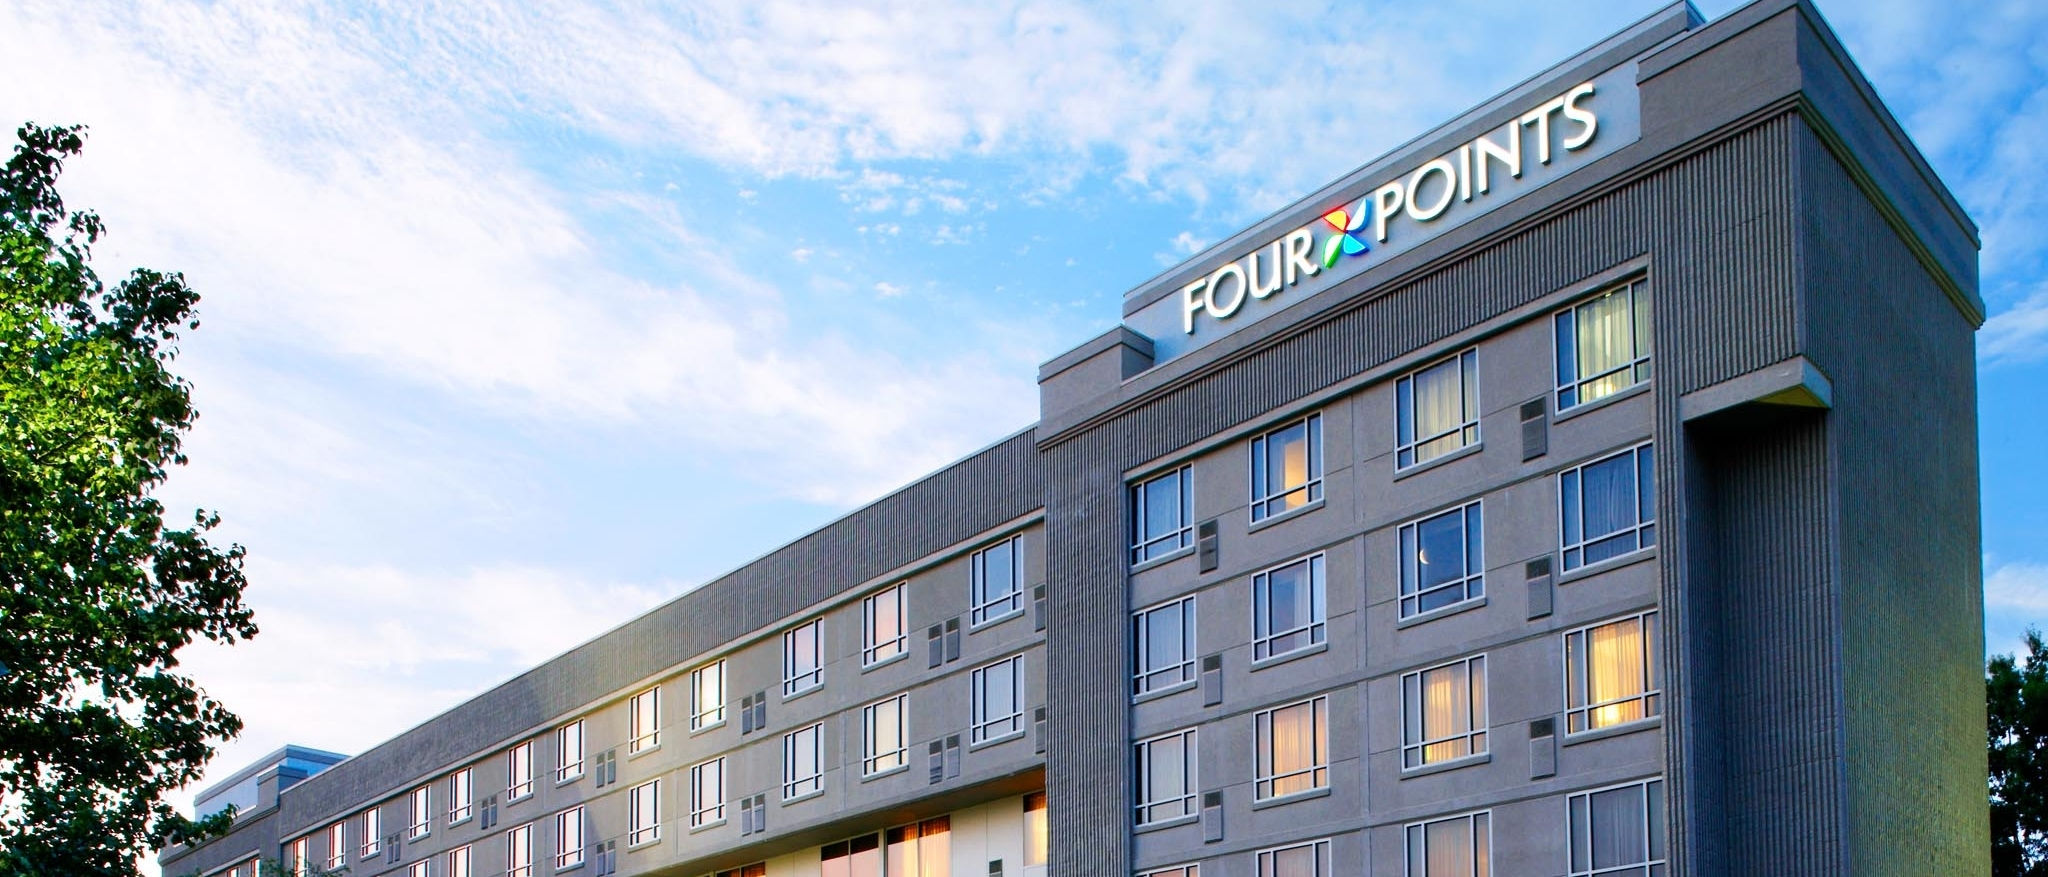 Four Points by Sheraton Charlotte - Hotel Exterior